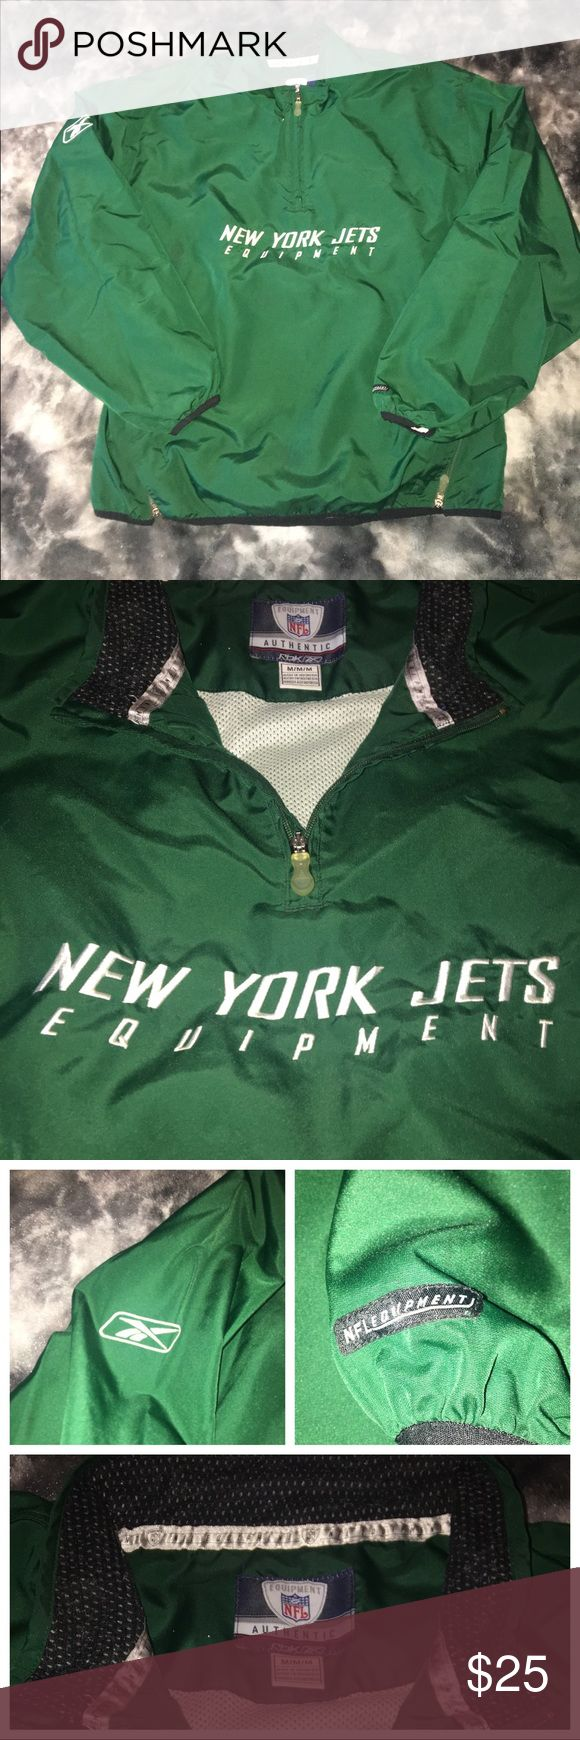 NY JETS Official Pullover 🏈💚 NFL Official Reebok NY Jets Pullover Absolutely no signs of wear! Has 2 zipper pockets and sizes can be zippered down Retail $29.99 Always open to offers! 🙂 Reebok Jackets & Coats Lightweight & Shirt Jackets